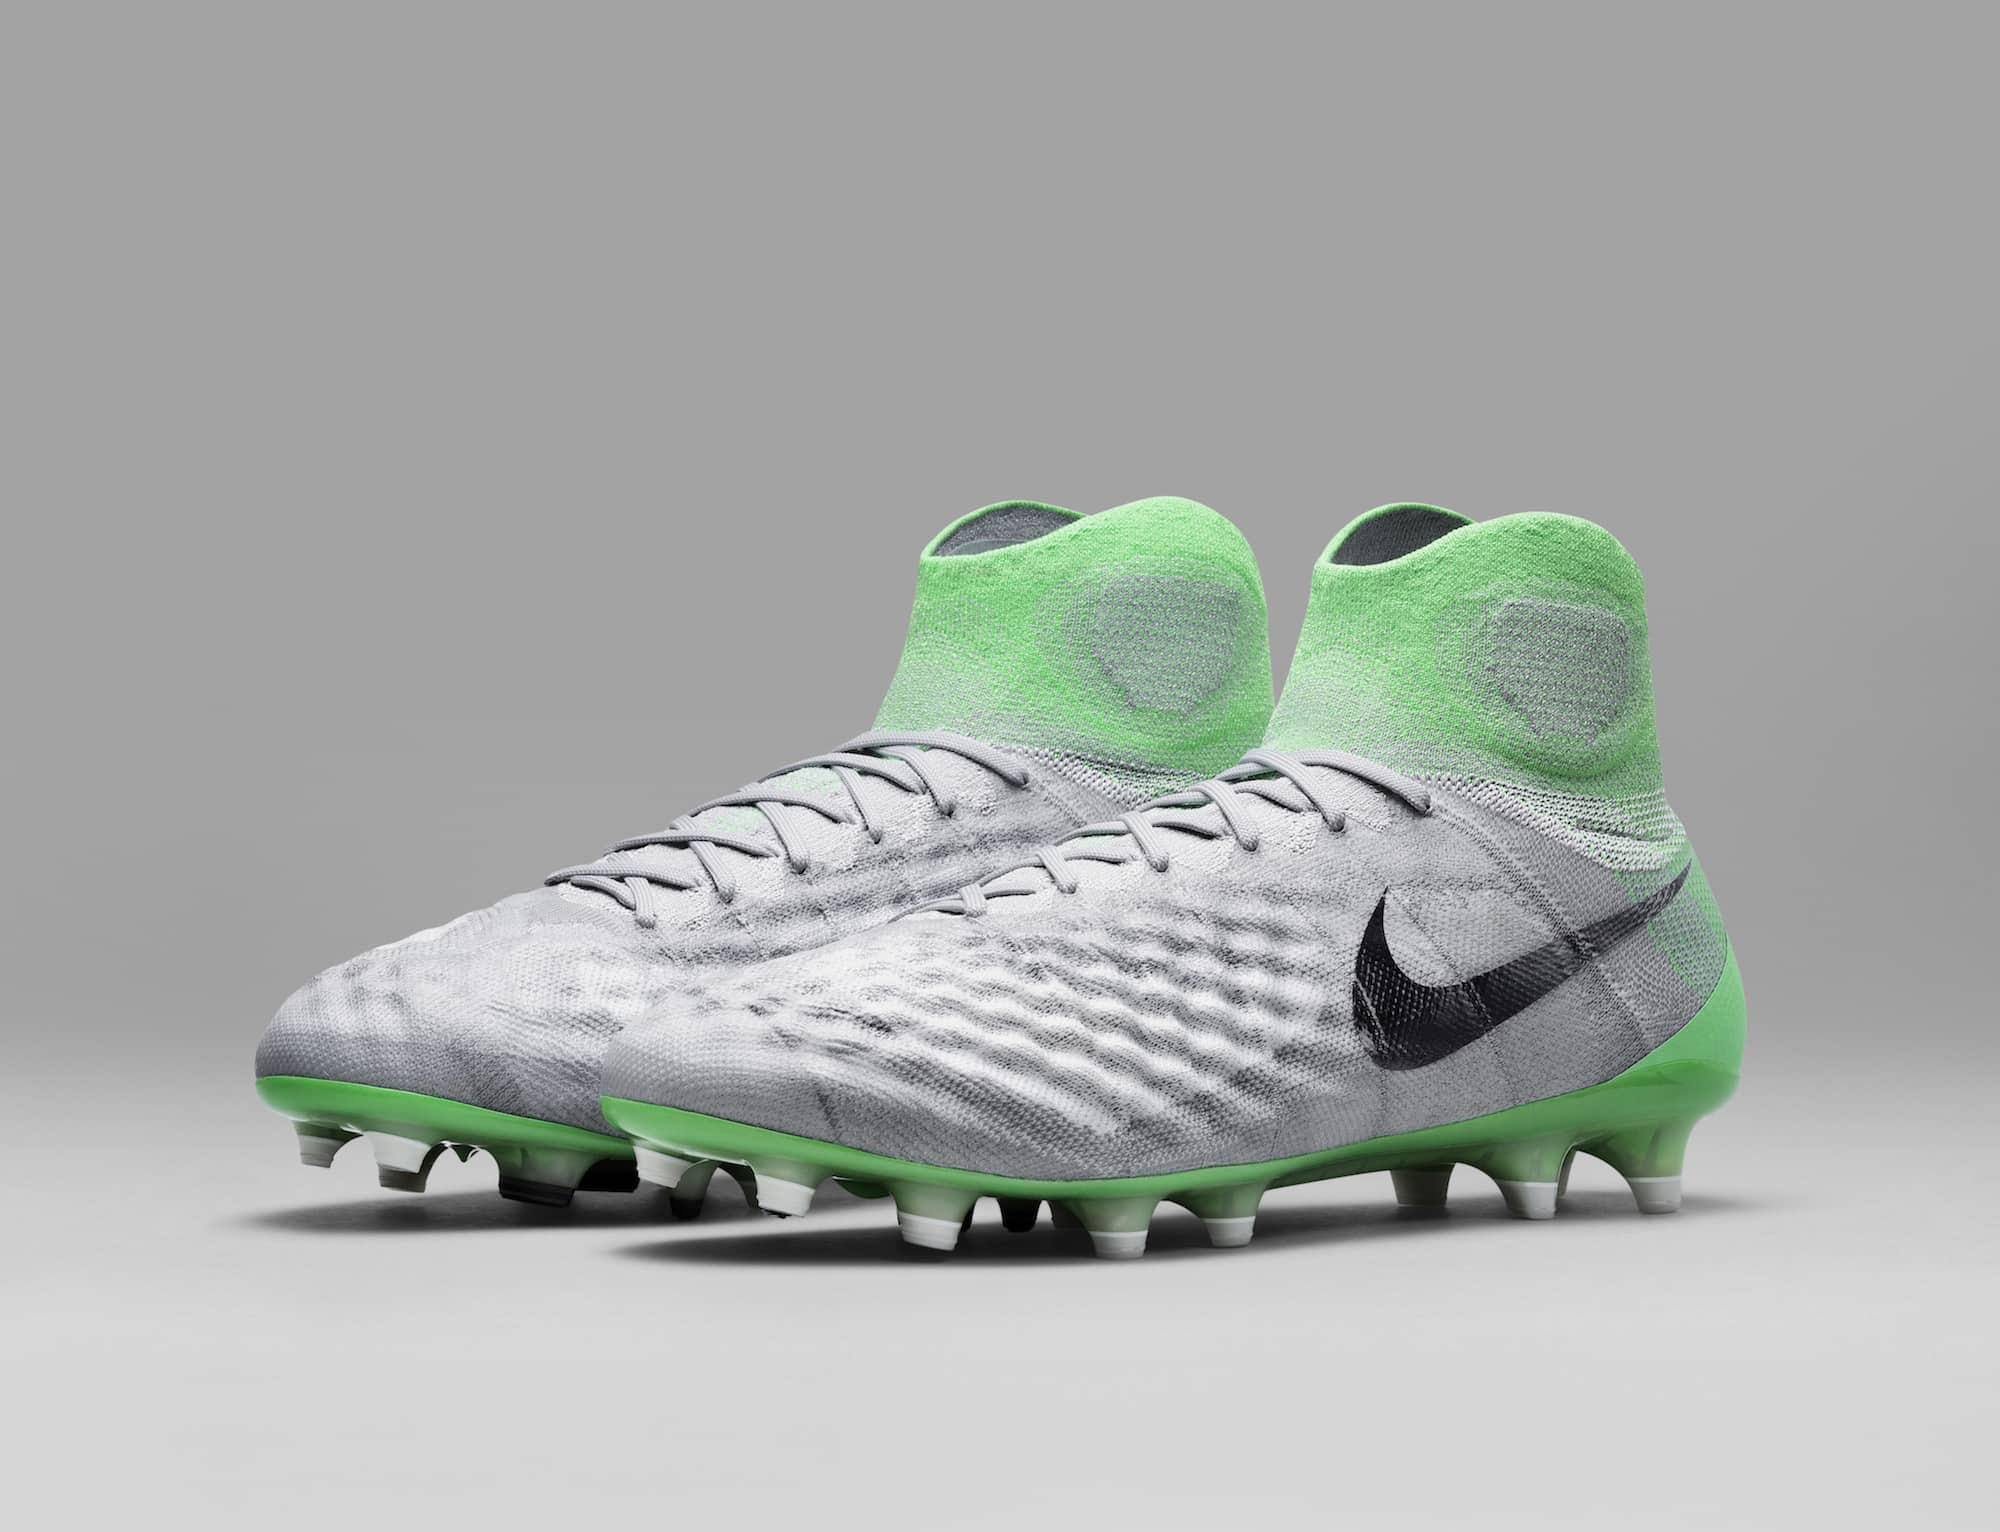 chaussures-football-Nike-Magista-Obra-2-Femmes-Women-Radiation-Flare-img1